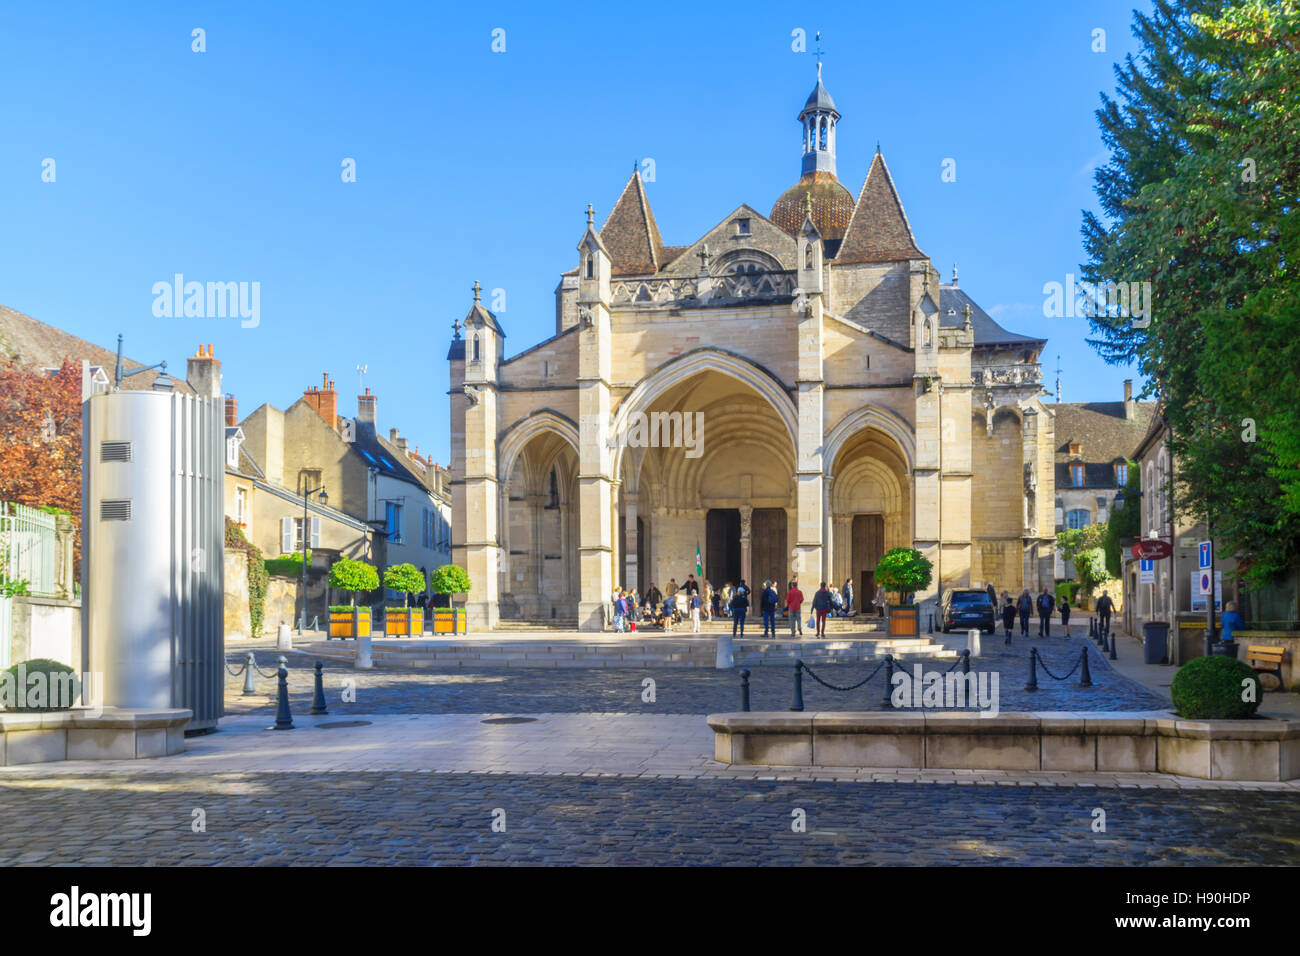 BEAUNE, FRANCE - OCTOBER 15, 2016: Scene of the Notre-Dame church, with locals and visitors, in Beaune, Burgundy, - Stock Image